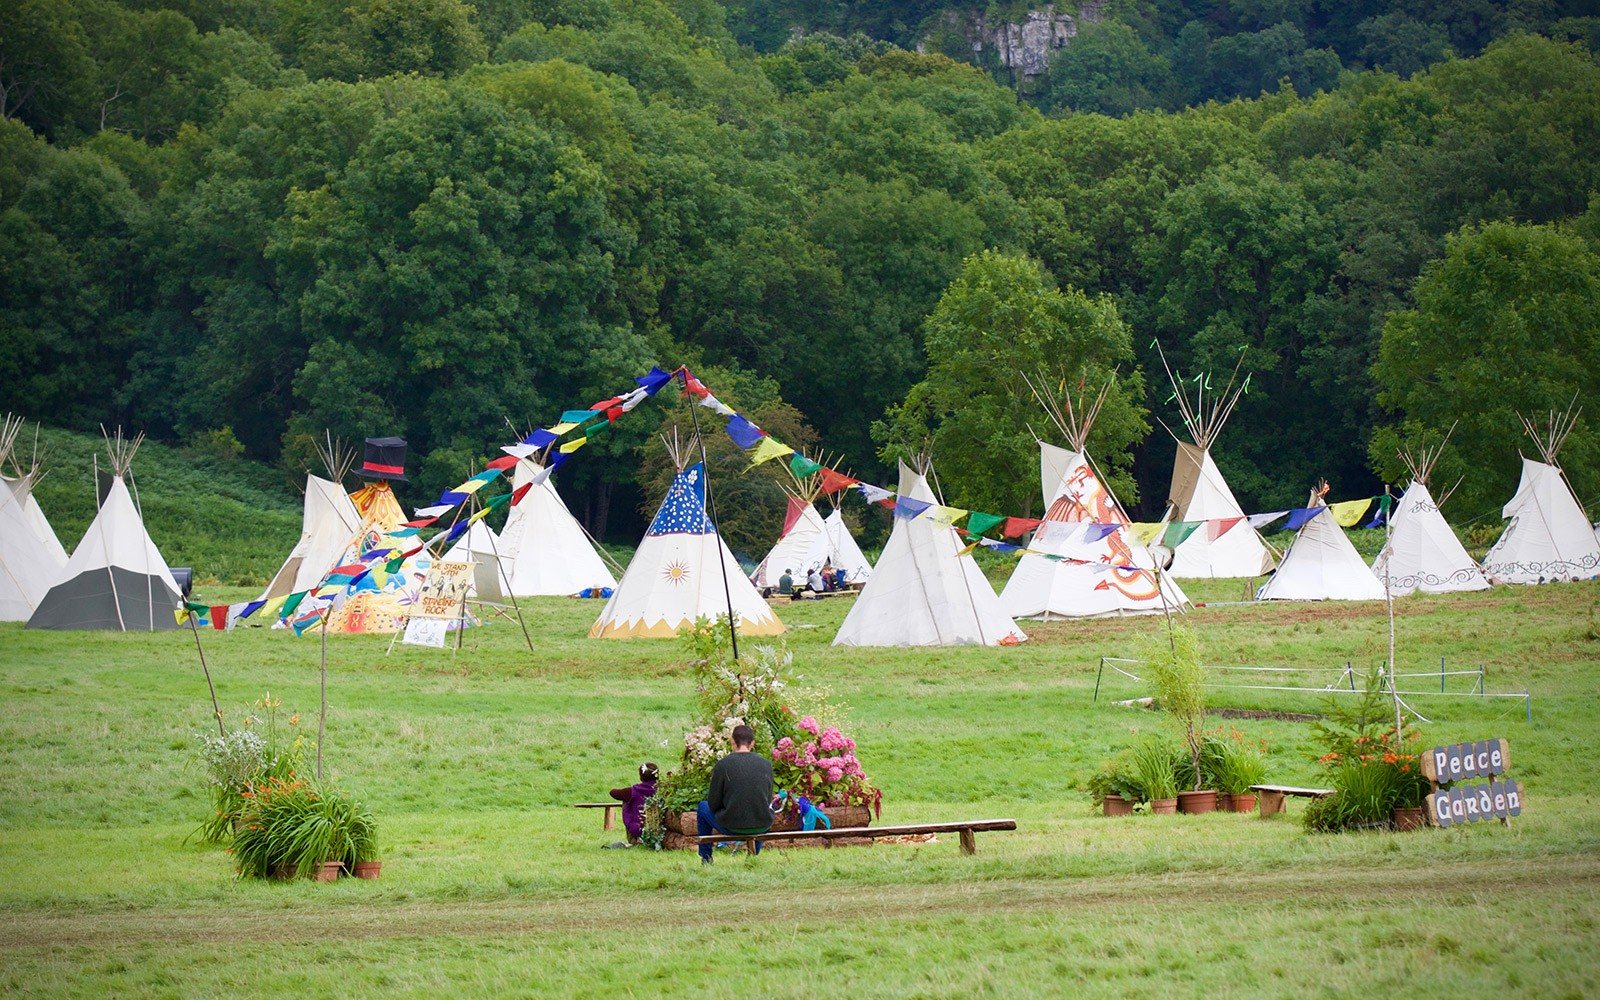 Web-Green-Gathering-Pic-4522c02